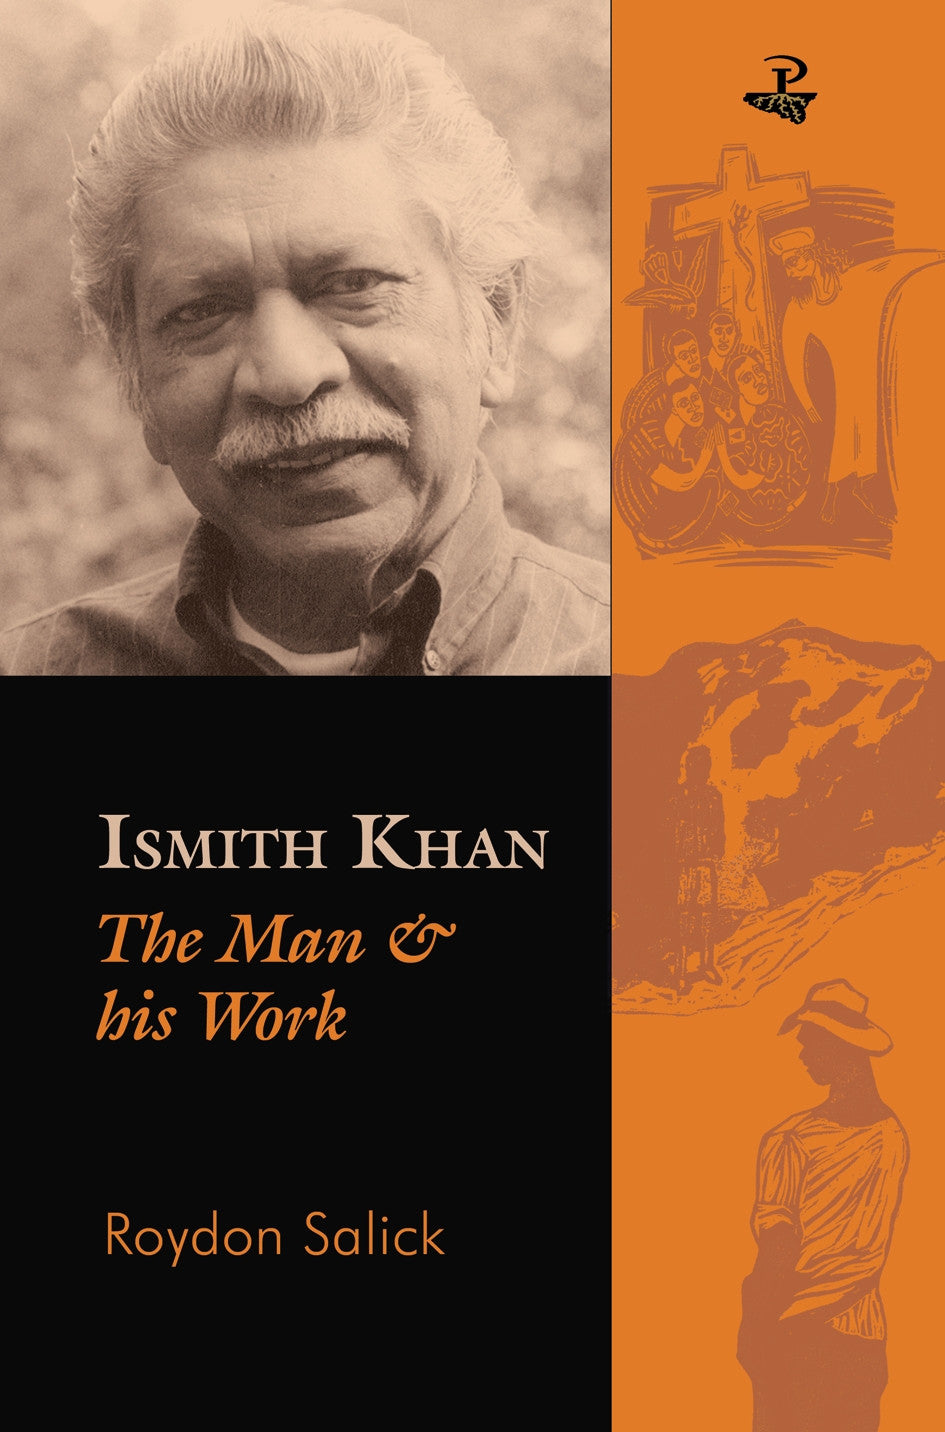 Ismith Khan: The Man & His Work